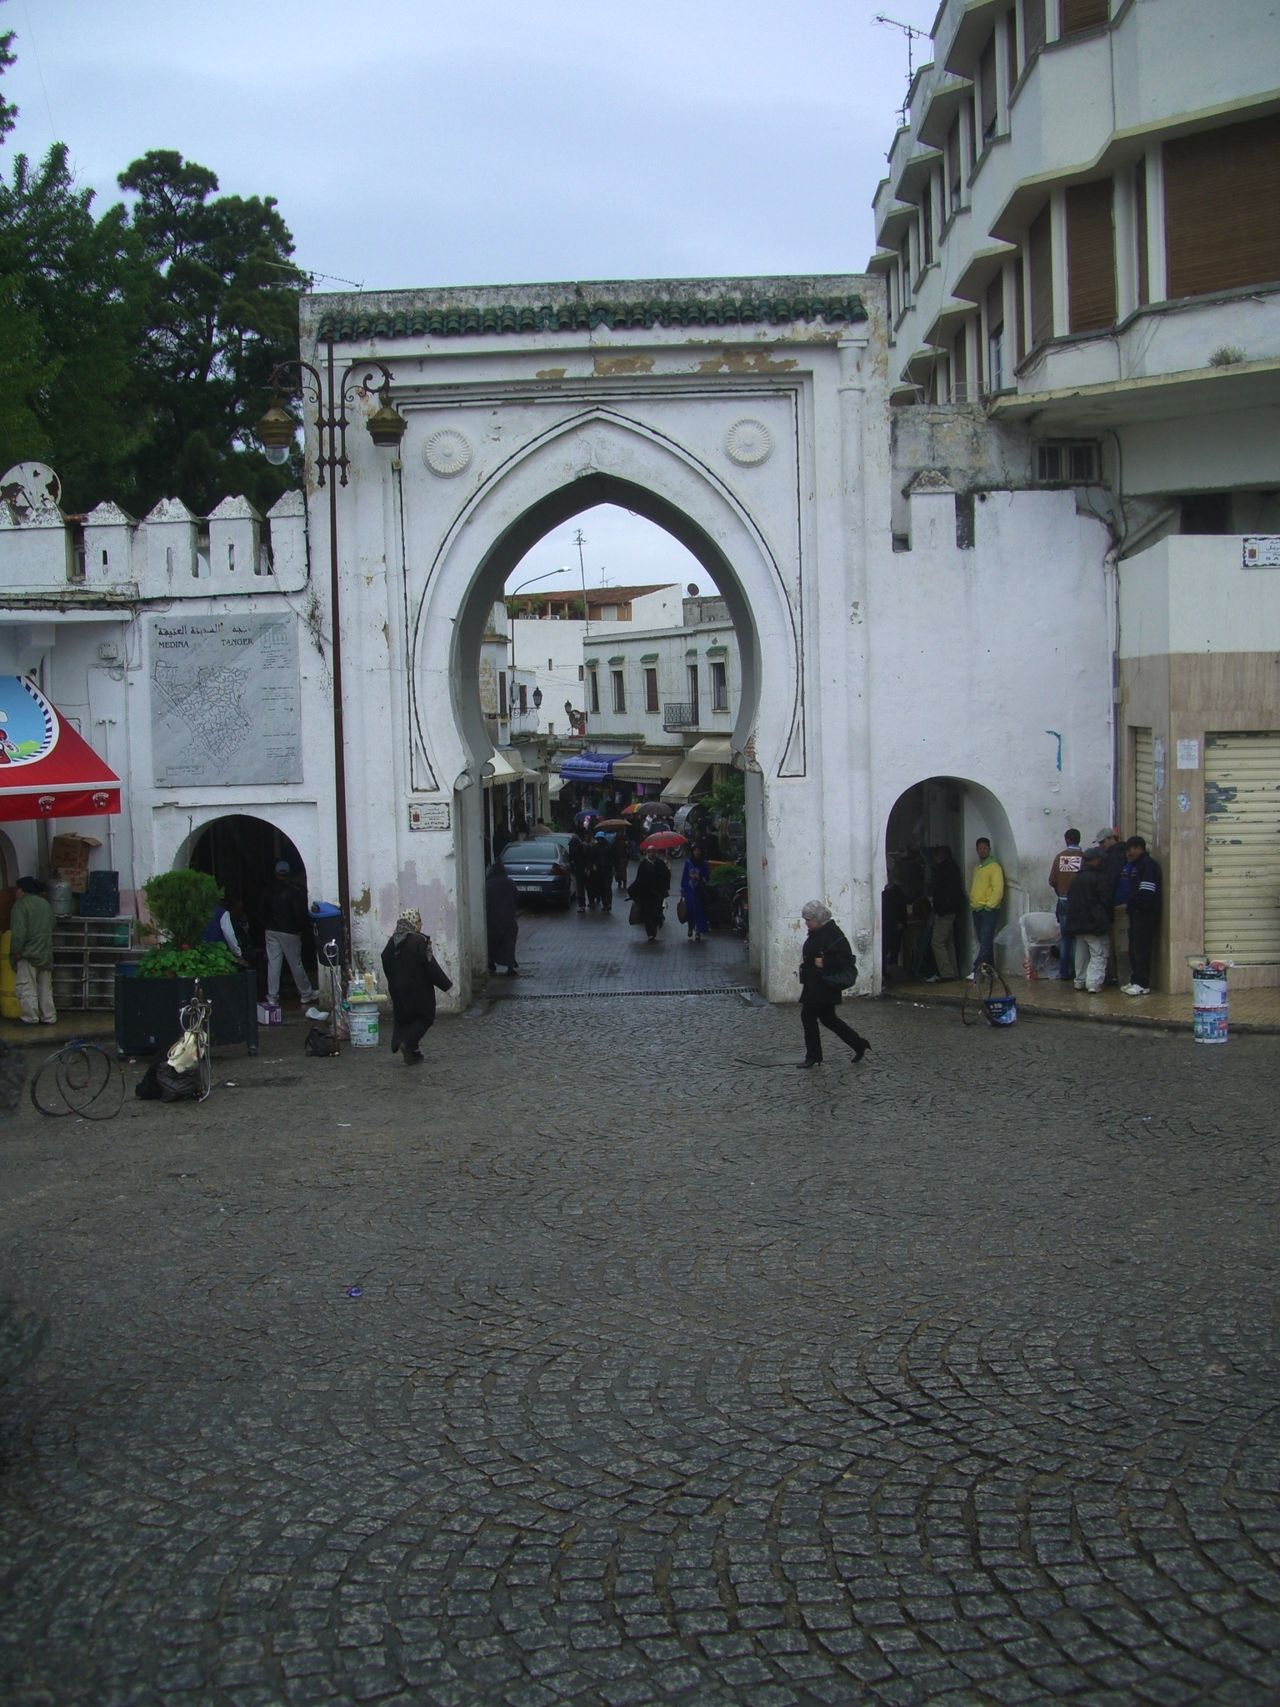 Entrance to Medina from Grand Socco Arch Architecture Building Exterior Built Structure Cloudy Sky Composition Entrance Famous Place Full Frame Gateway Gateway Arch Incidental People Medina Moroccan Architecture Moroccan Style Morocco Old City Outdoor Photography Tangier Tourist Attraction  Tourist Destination Tree White Walls